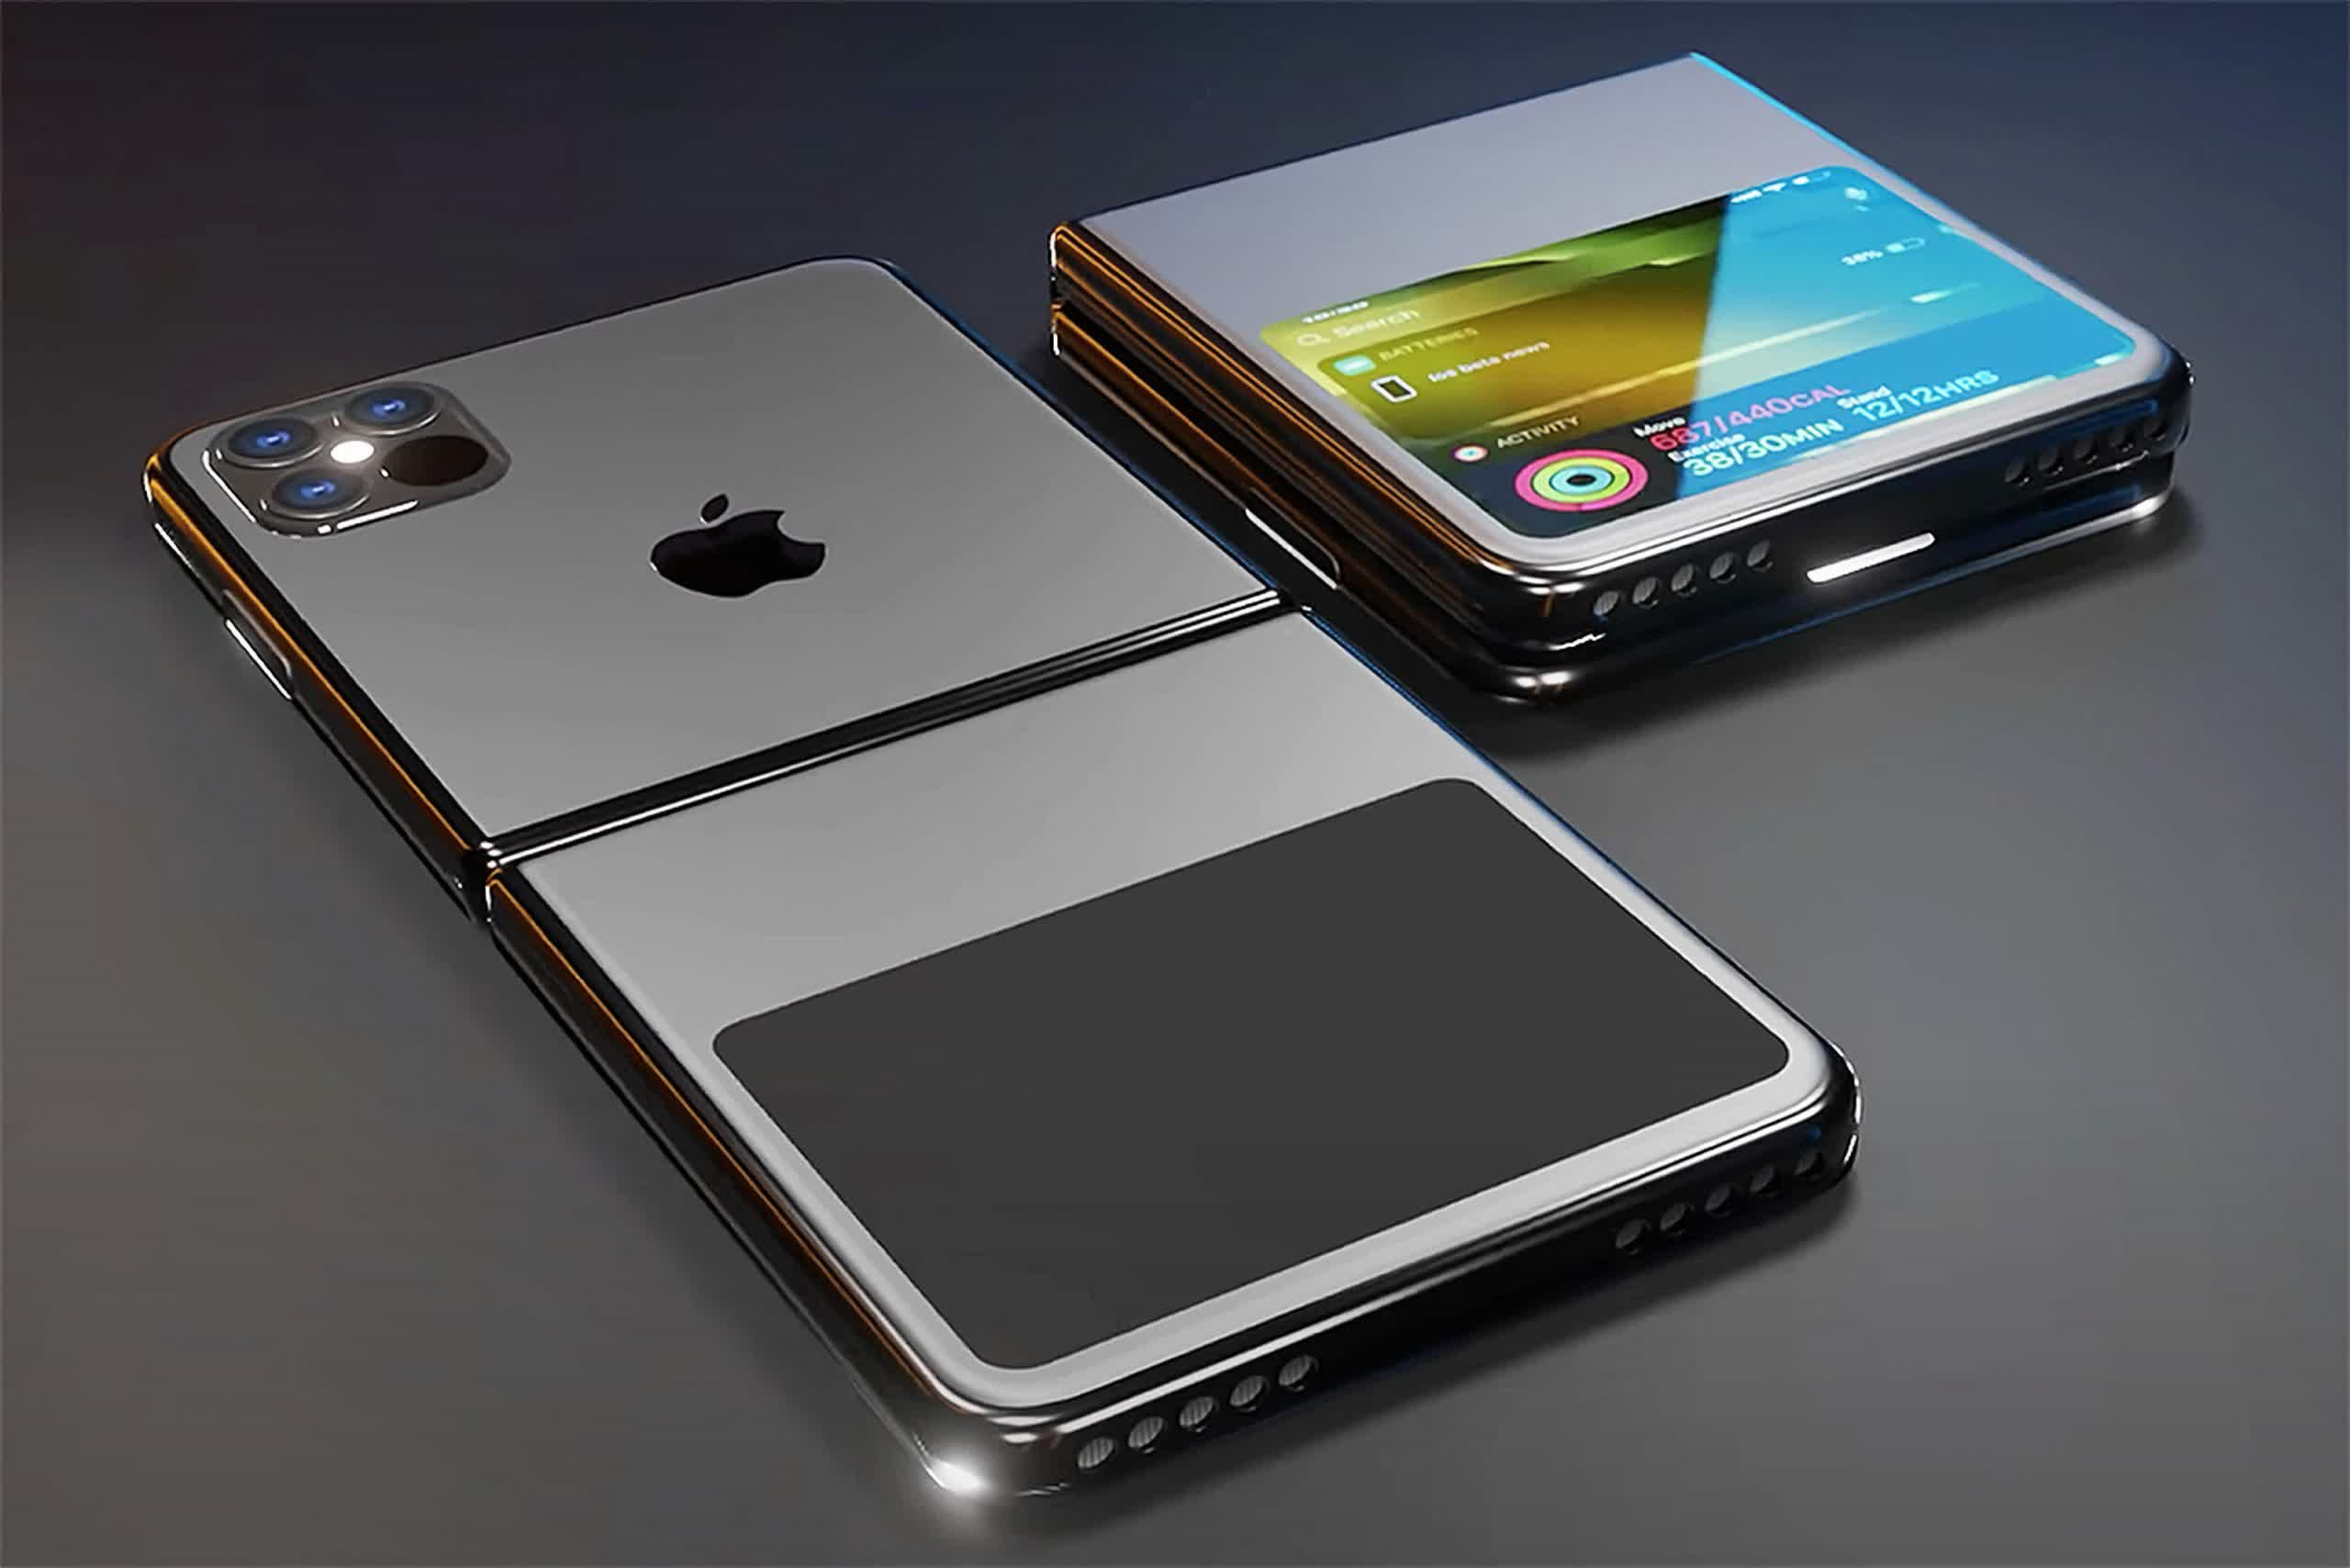 Supply chain leak suggests Apple is testing a foldable ...